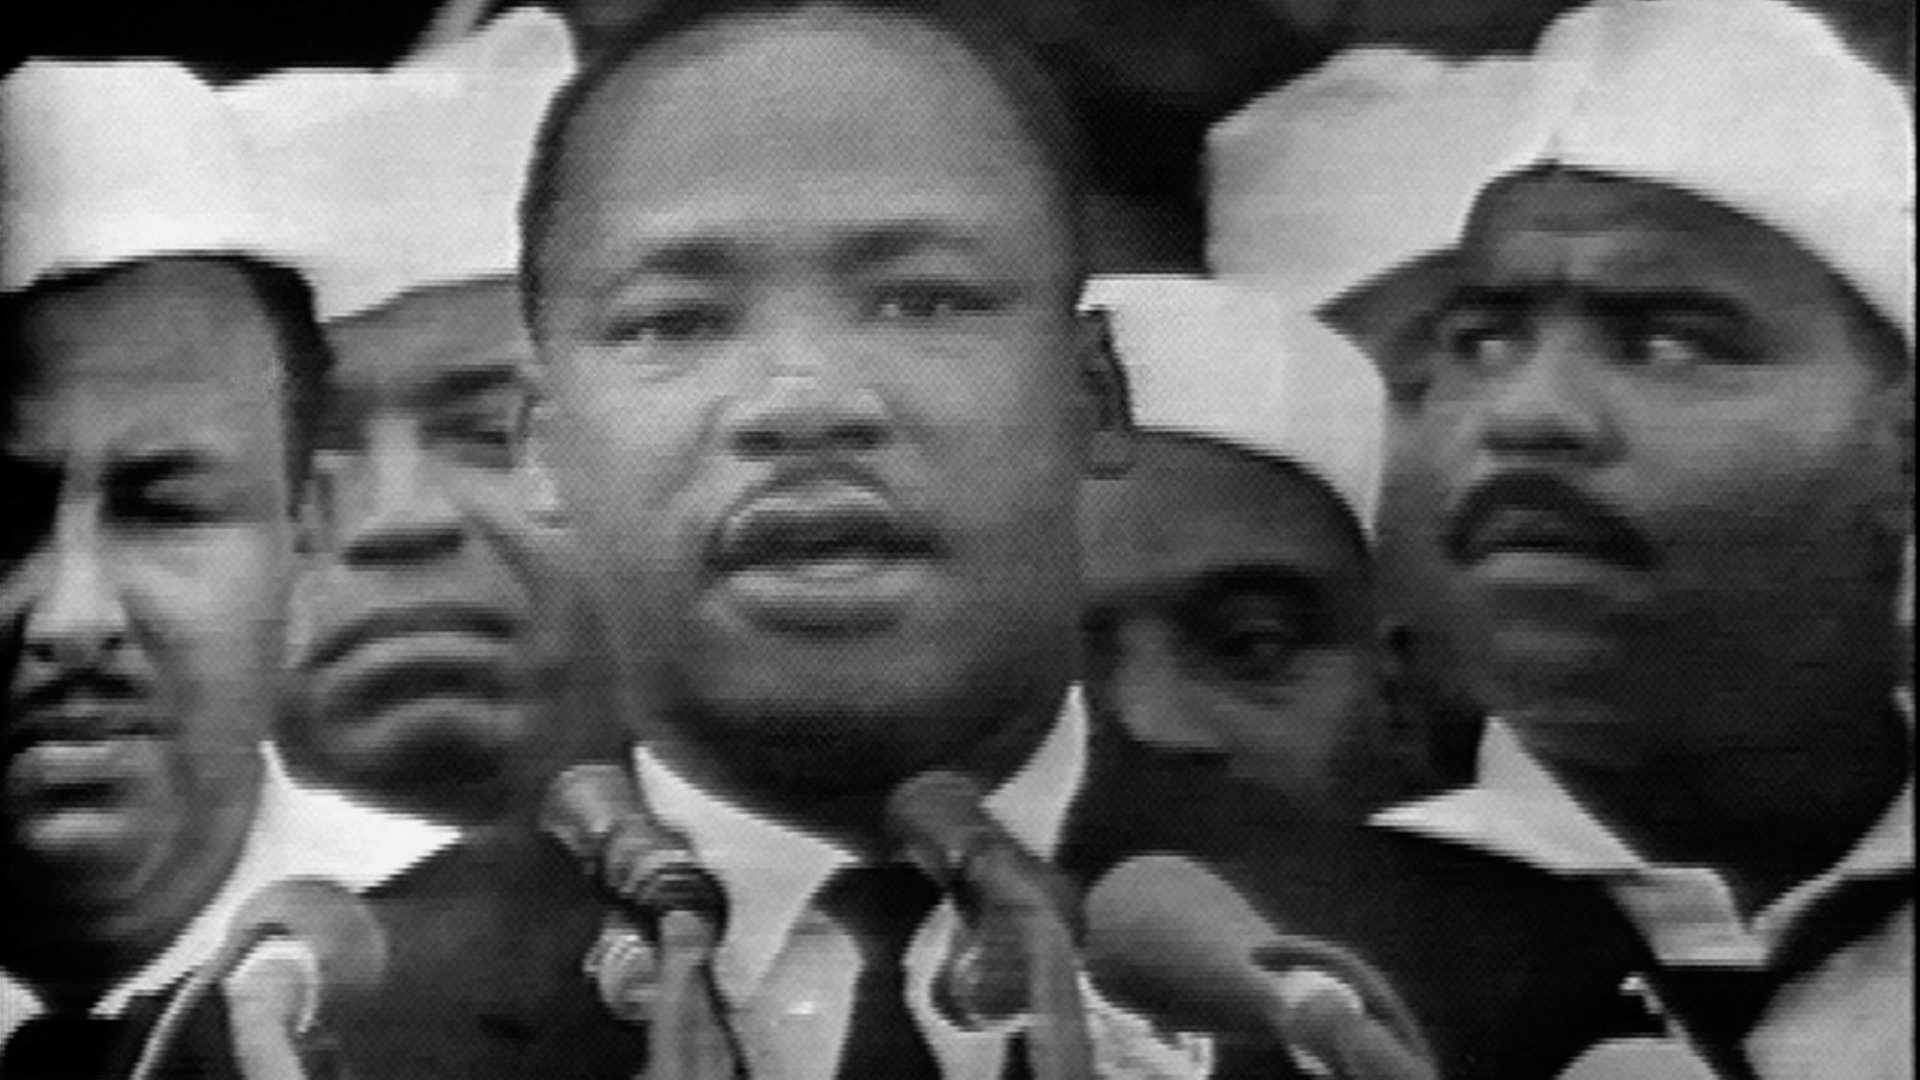 Martin Luther King Jr. speaking at the March on Washington for Jobs and Freedom in 1963.